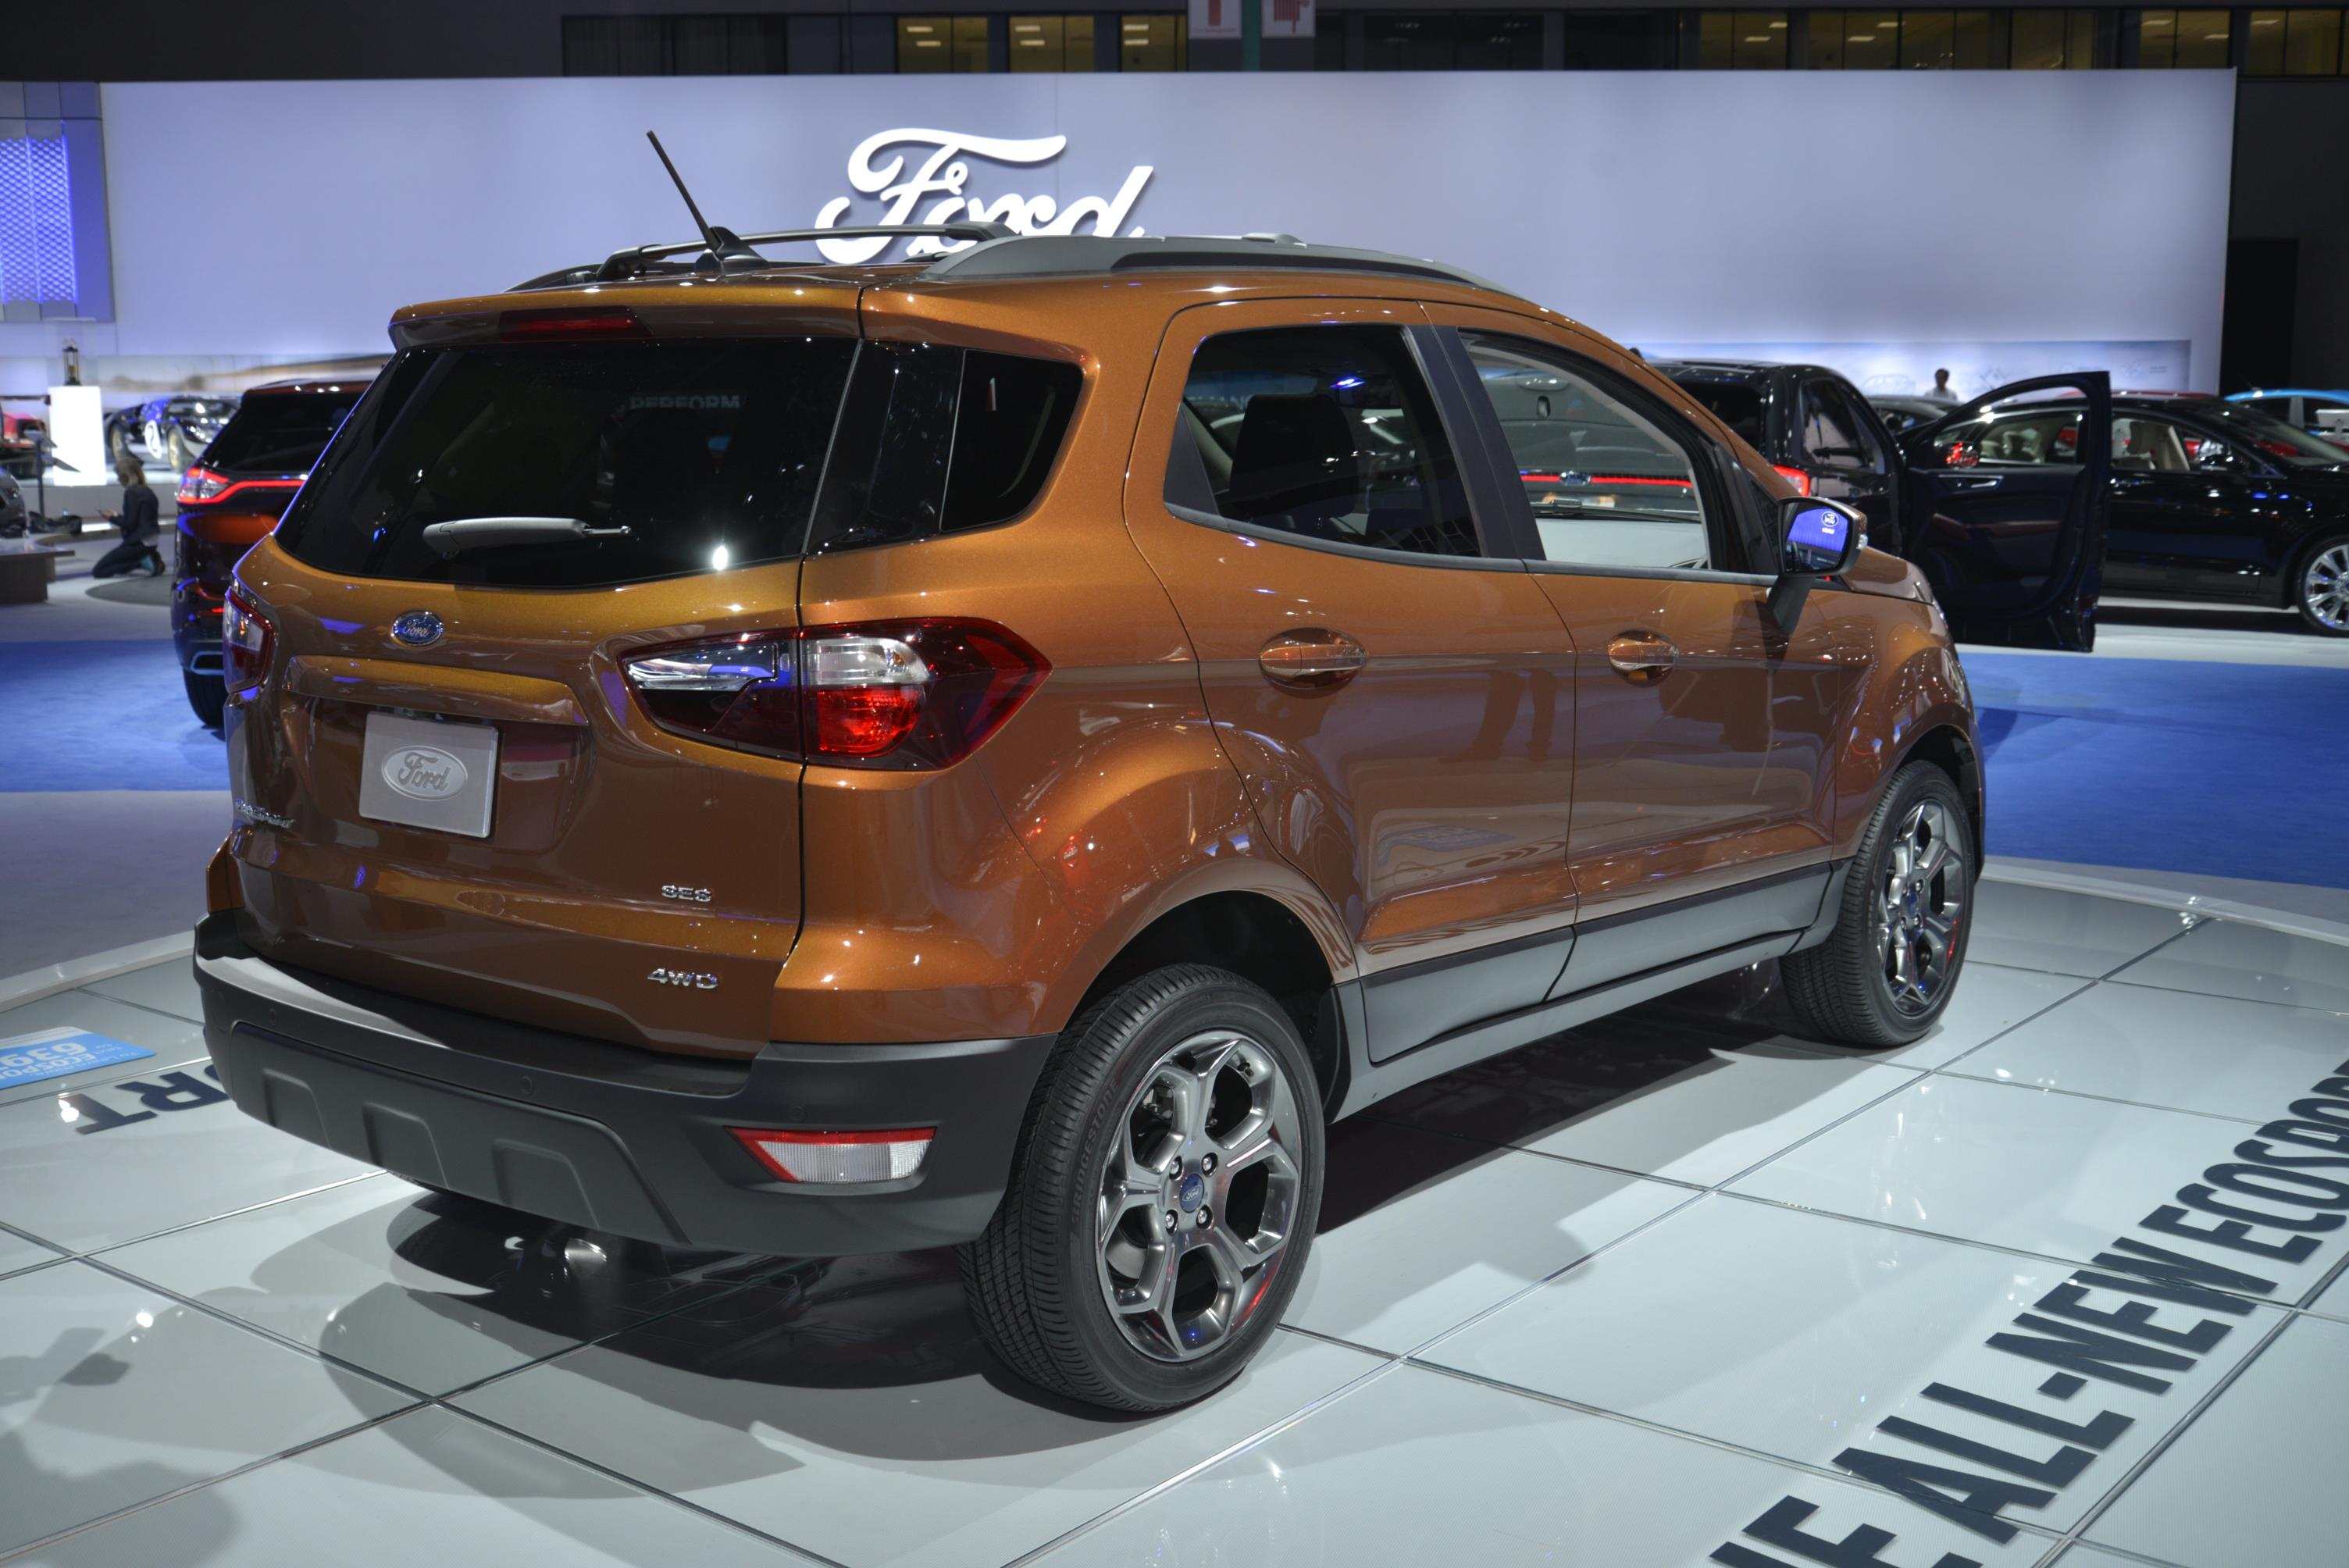 ALL-NEW ECOSPORT - FORD'S SMALLEST SUV